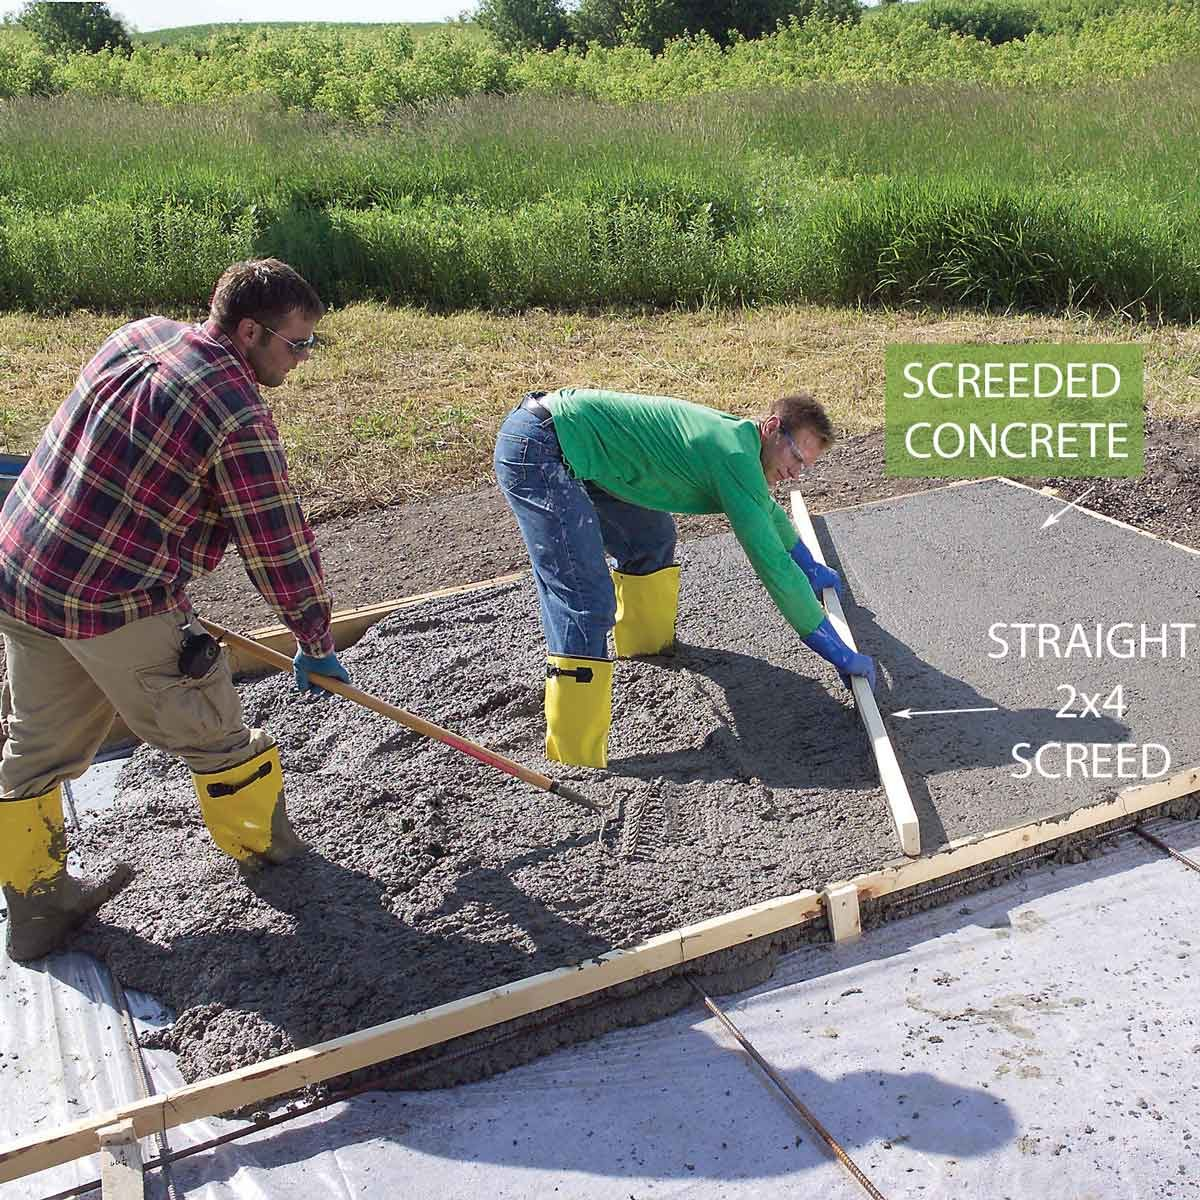 Pour and Level the Concrete